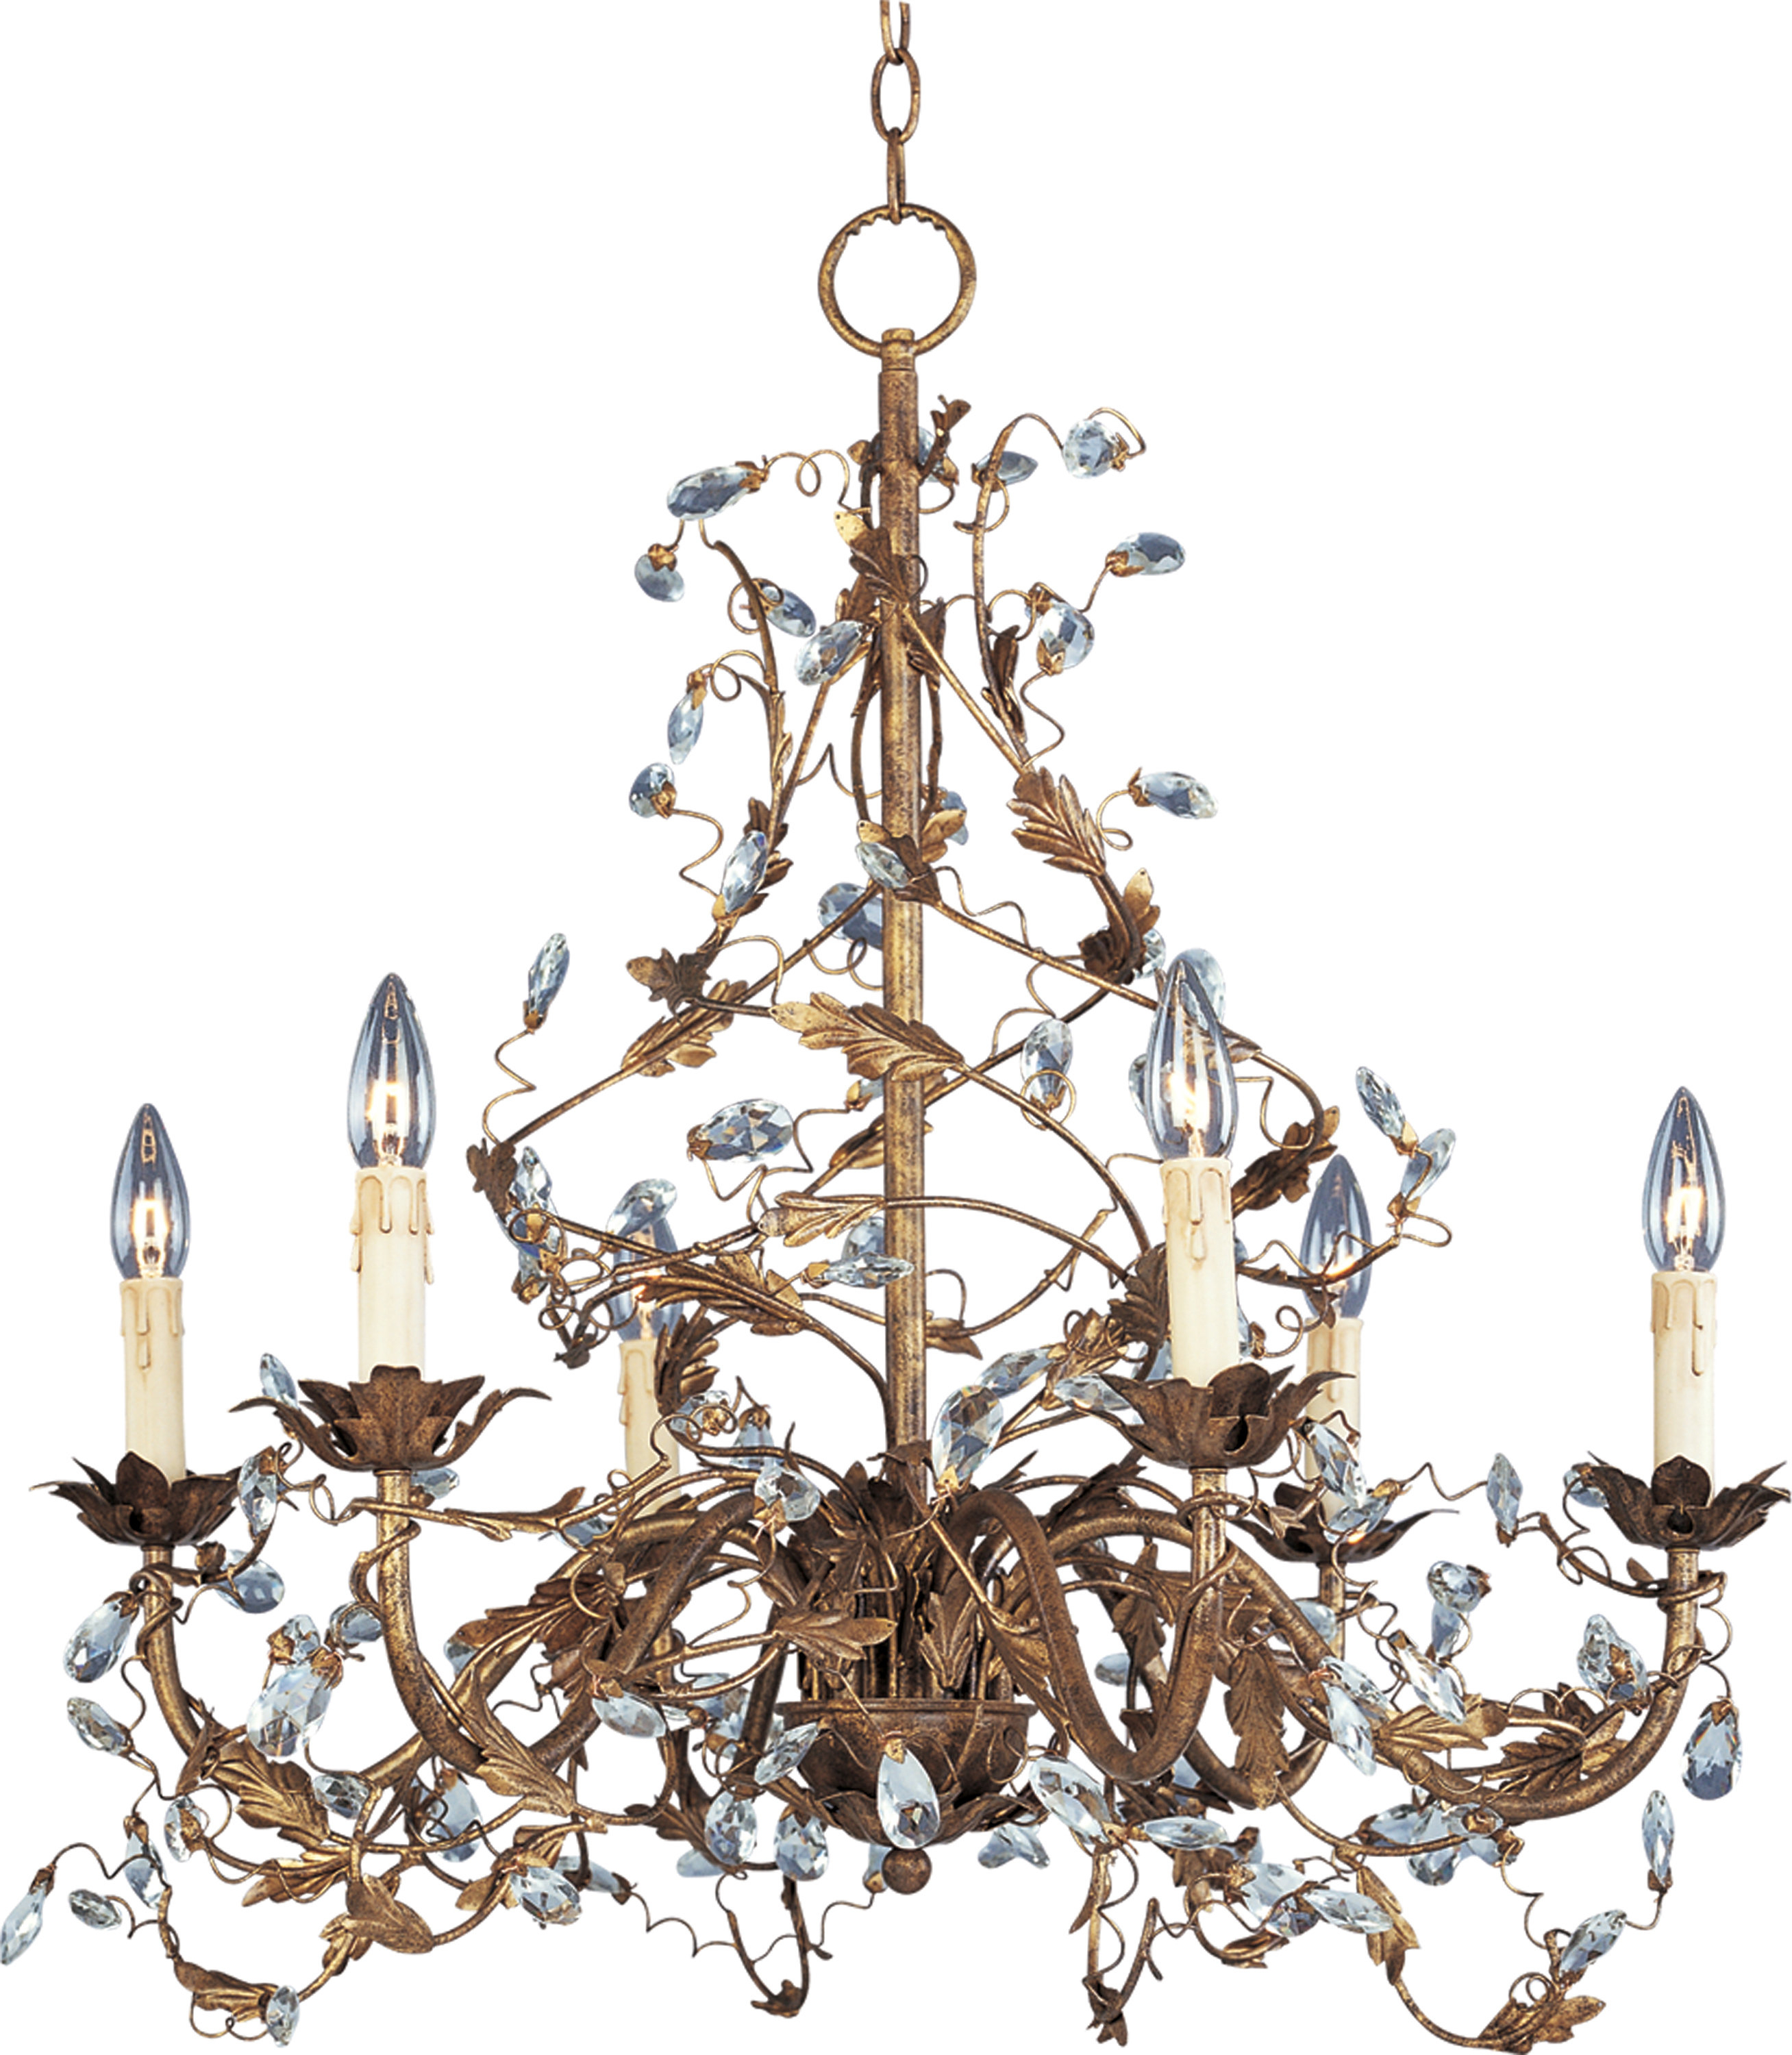 Hesse 5 Light Candle Style Chandeliers With Regard To Latest Kaiya 6 Light Candle Style Chandelier (Gallery 23 of 25)